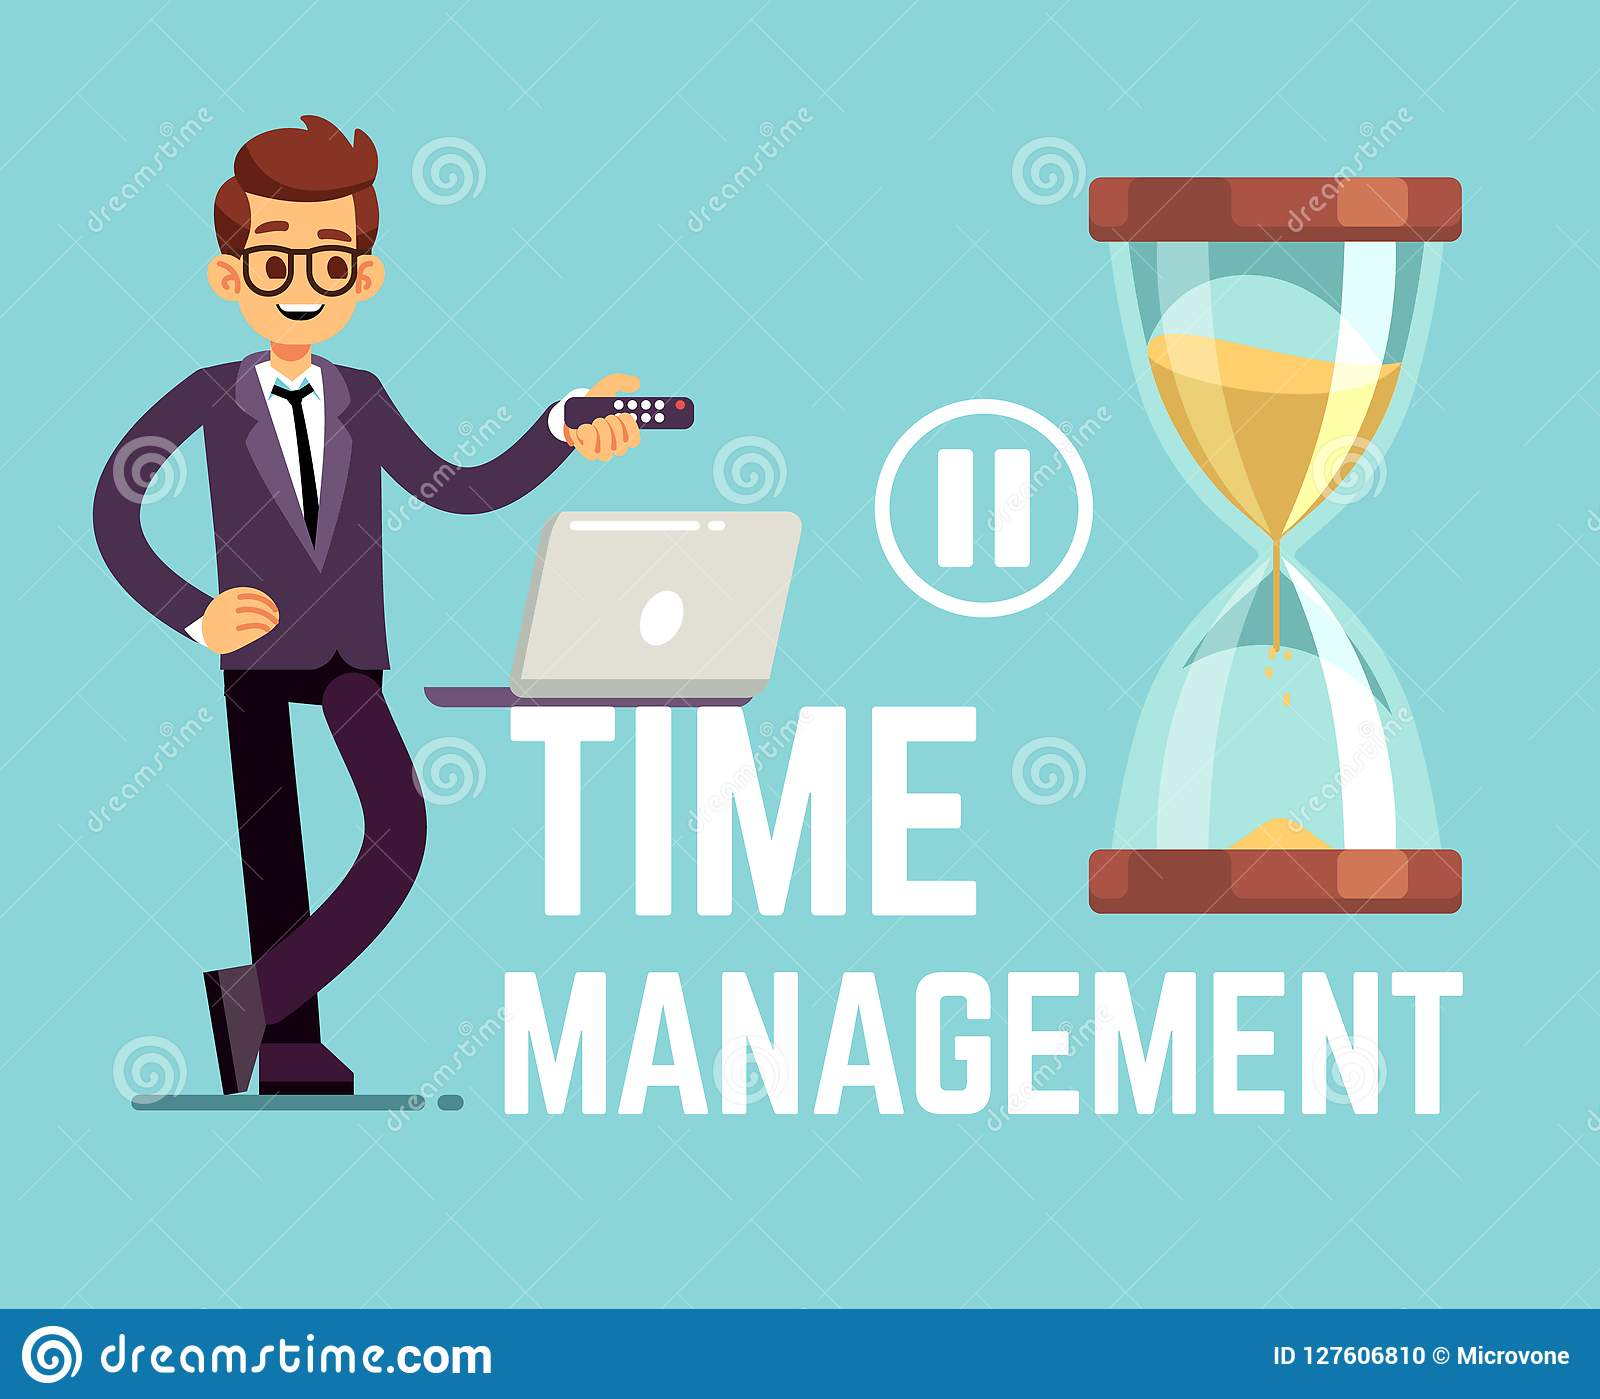 Time Management Business Concept With Cartoon Businessman And Clock Vector Illustration Stock Vector Illustration Of Business Abstract 127606810